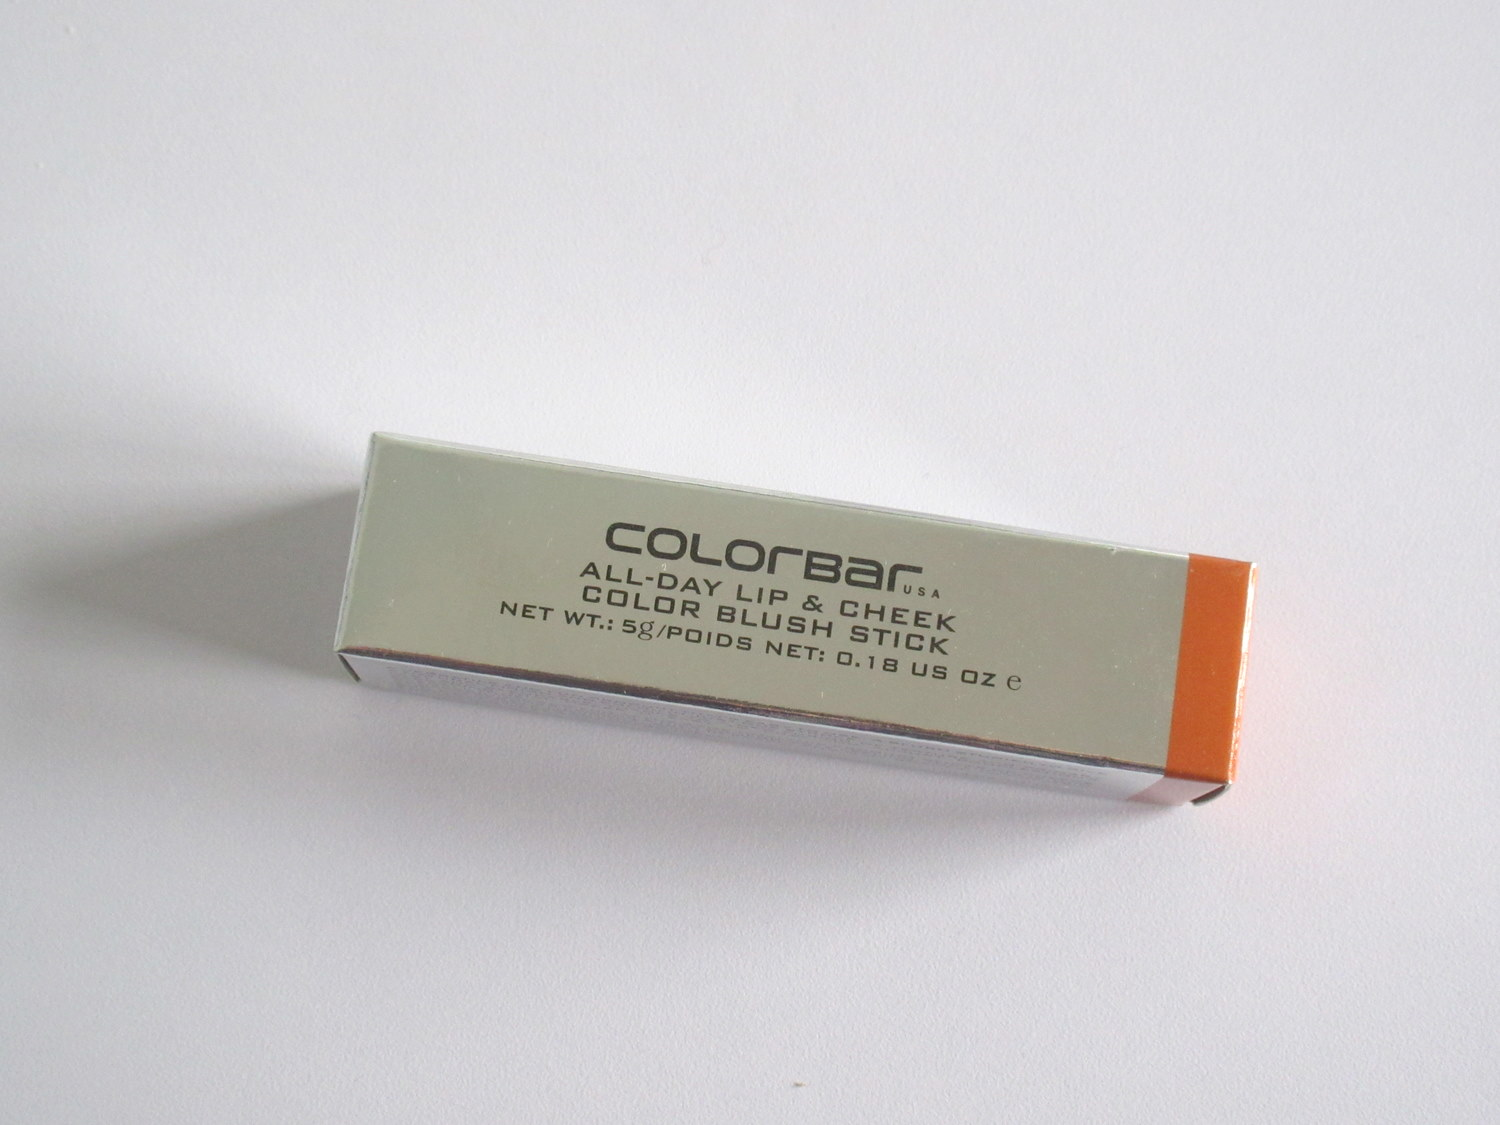 Colorbar All Day Lip & Cheek Blush Stick in 003 Orange Amber